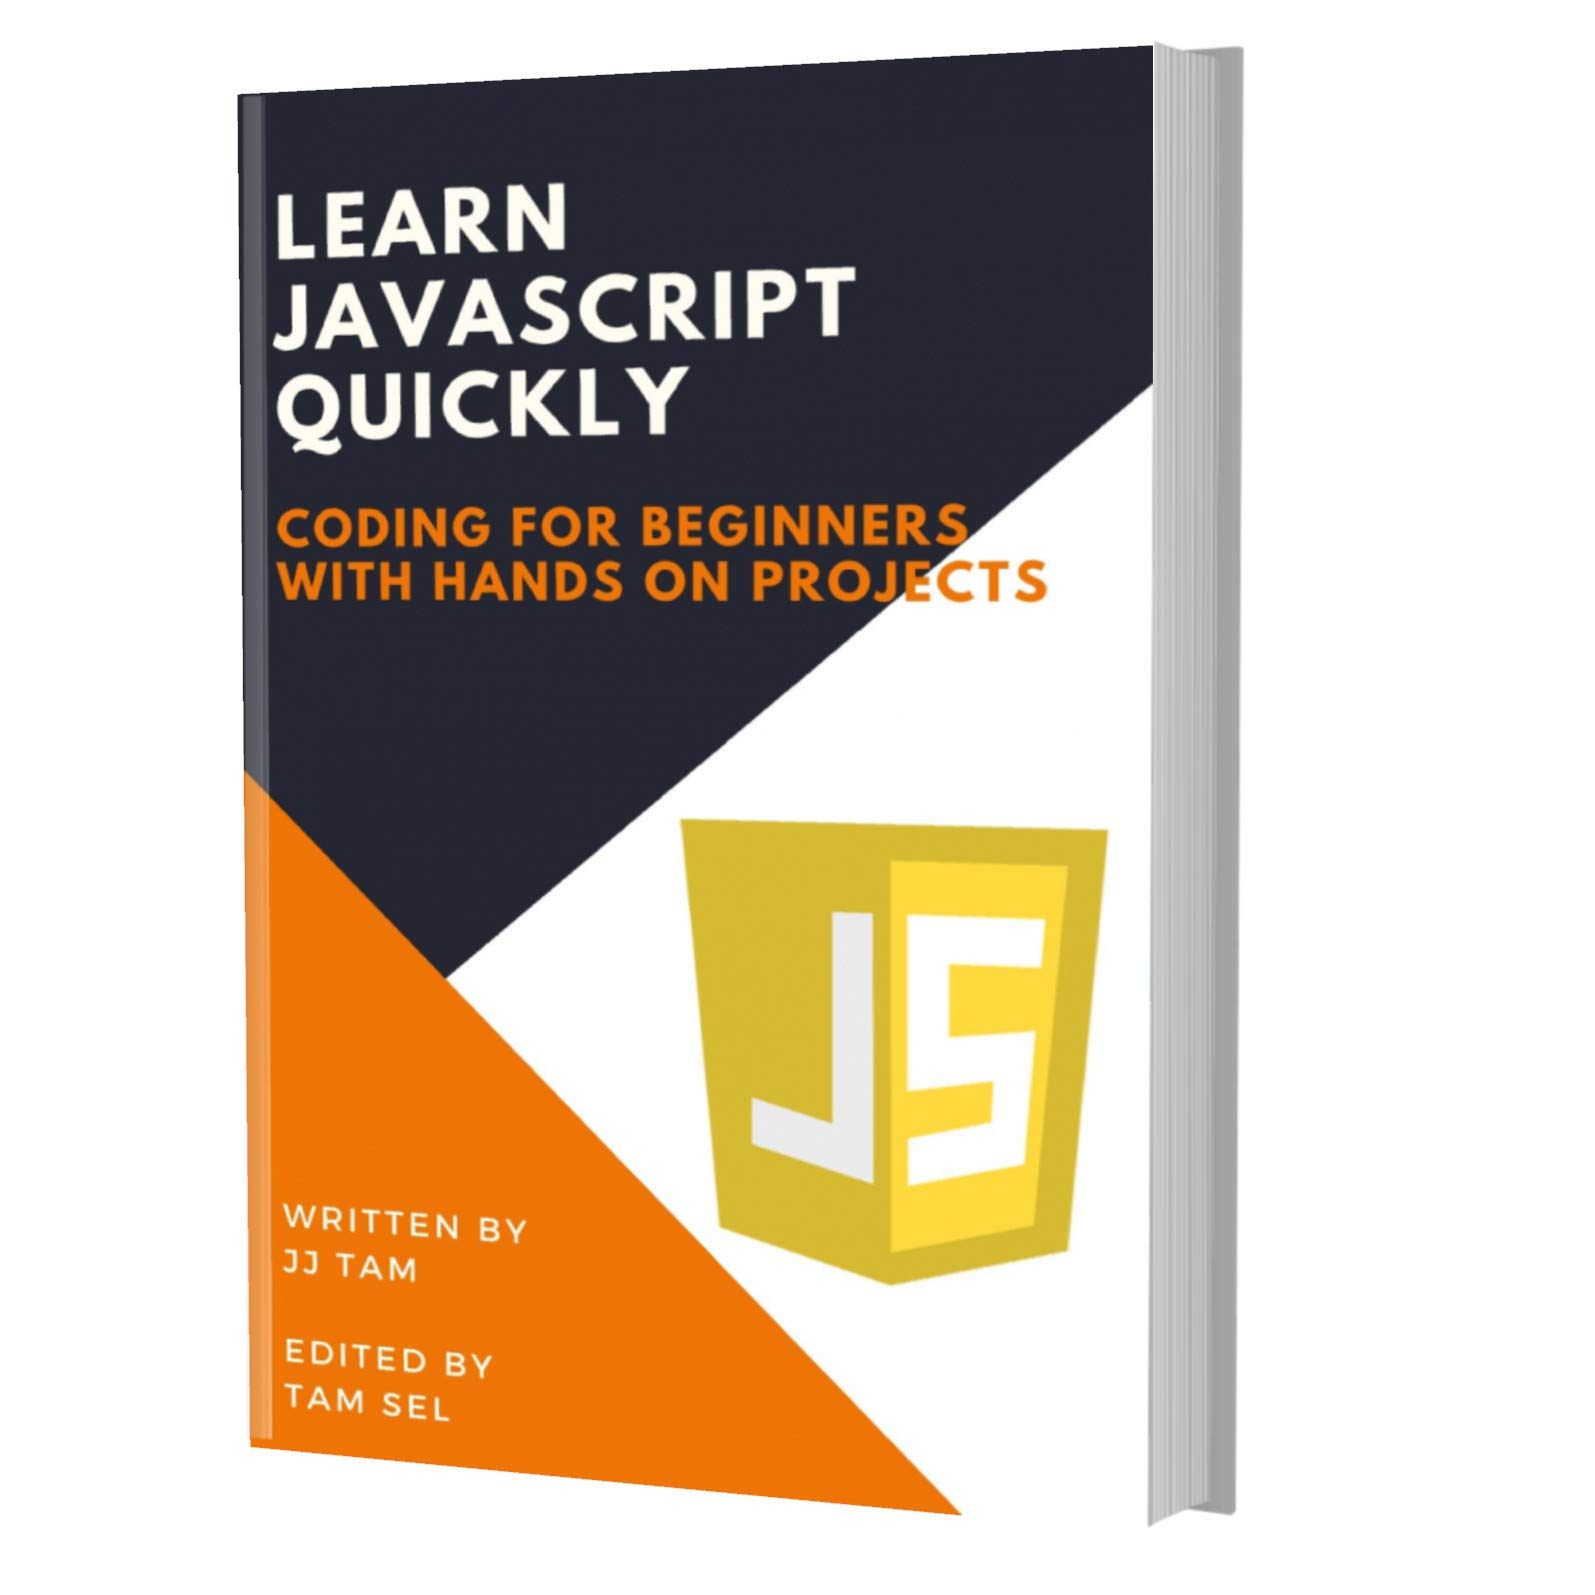 LEARN JAVASCRIPT QUICKLY: CODING FOR BEGINNERS - JAVASCRIPT PROGRAMMING LANGUAGE, A QuickStart eBook, Tutorial Book with Hands-On Projects, In Easy Steps! An Ultimate Beginner's Guide!